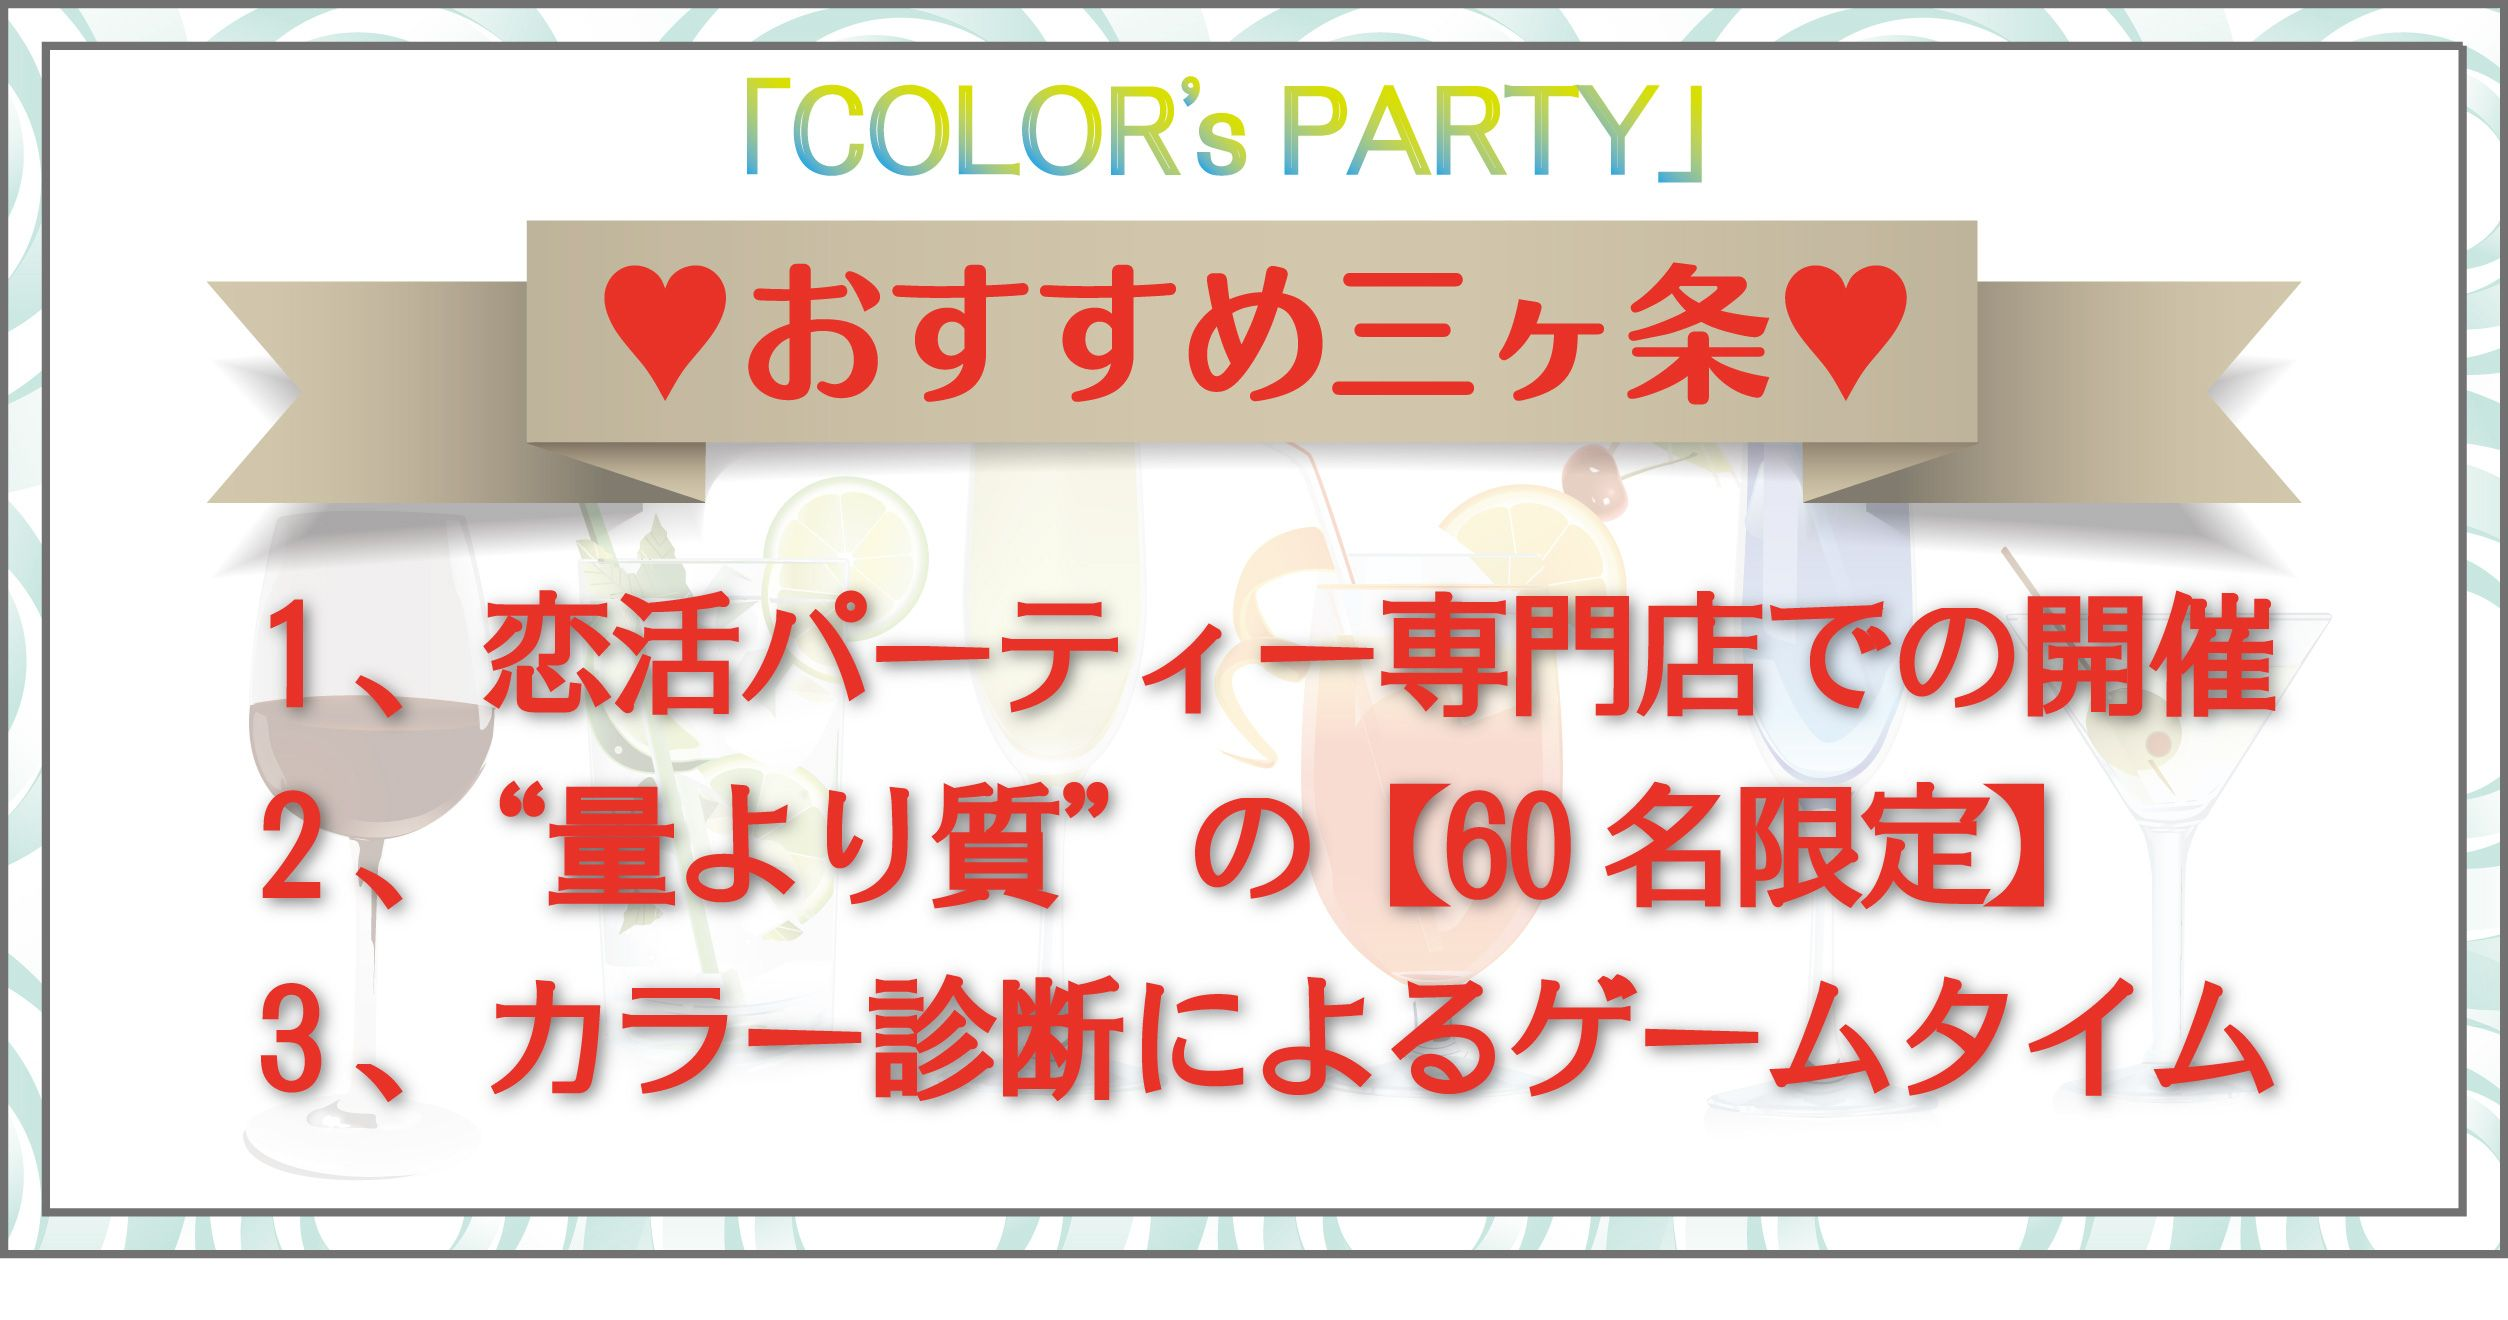 colorsparty2-2